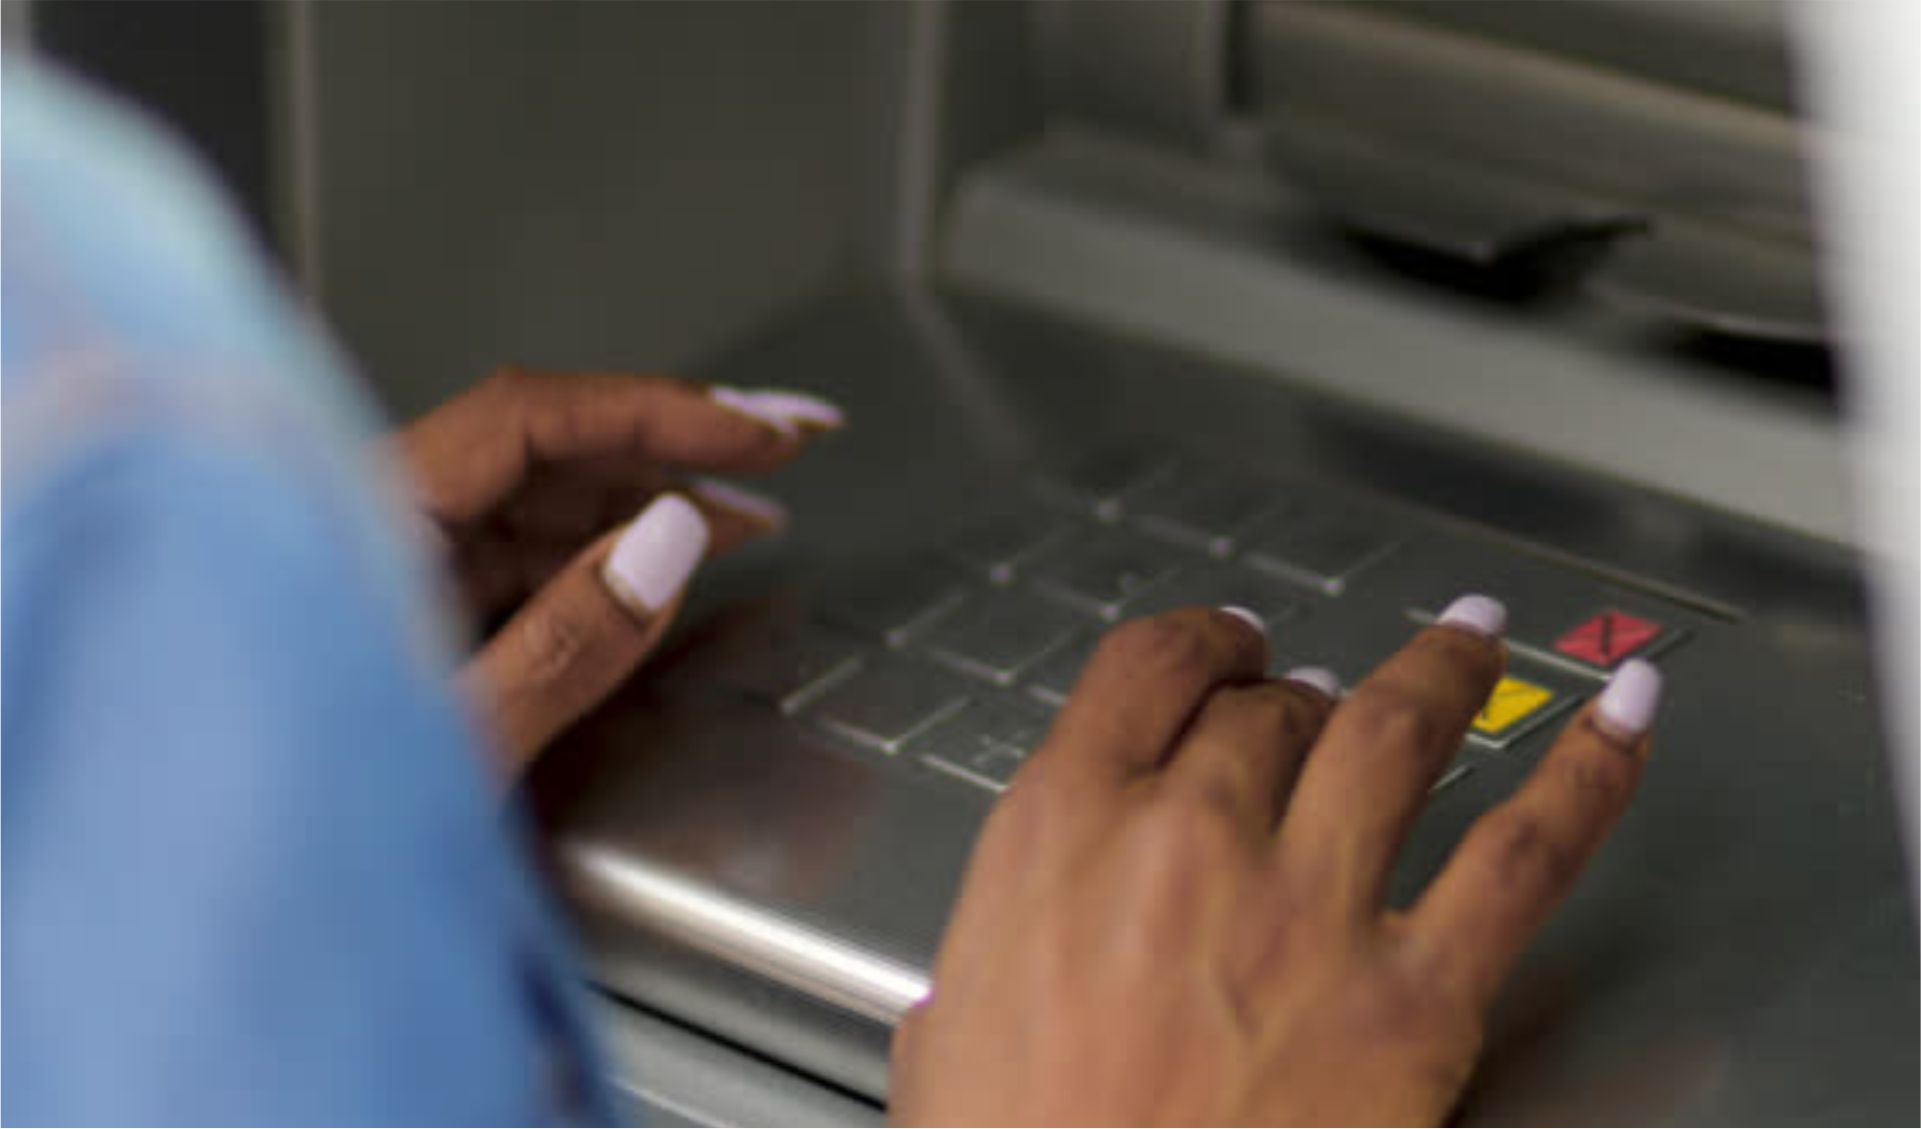 ATM SAFETY AND SECURITY TIPS